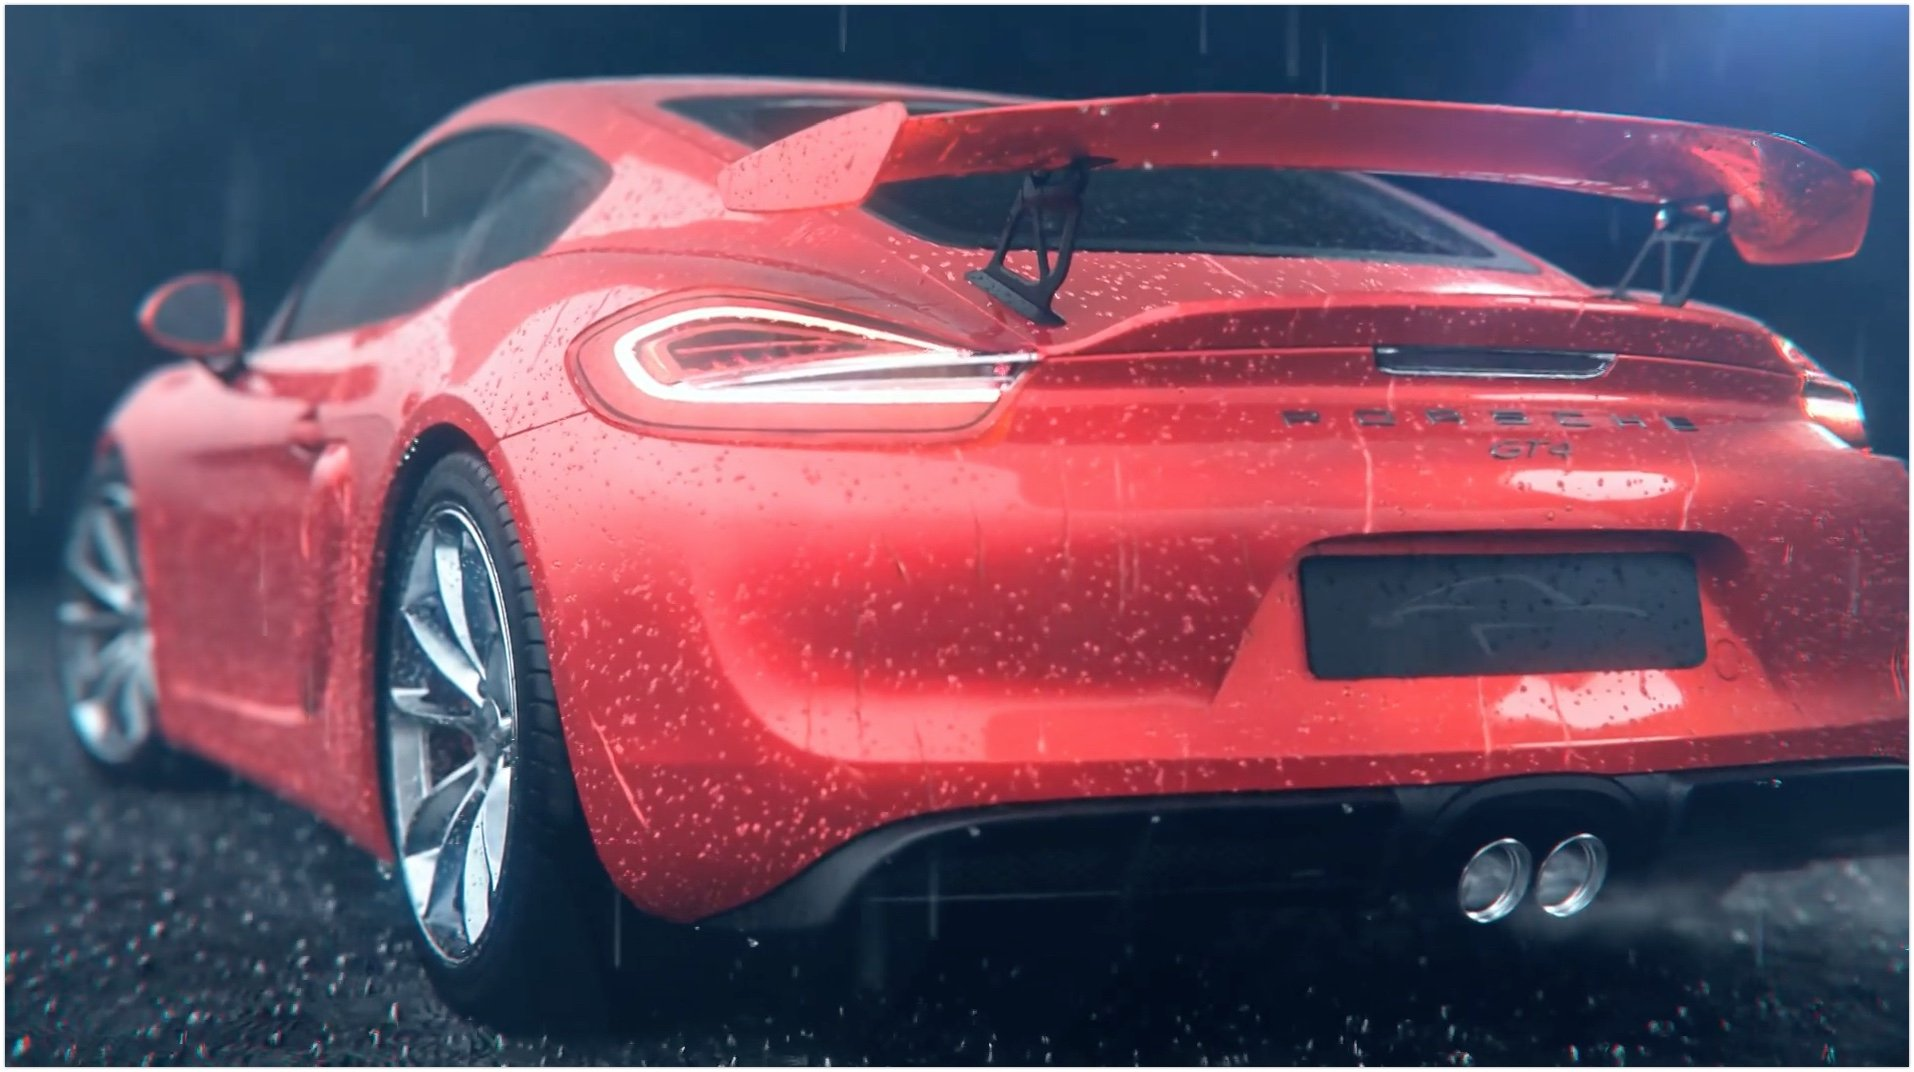 Porsche Cayman Gt4 3d Animated Windows Wallpaper - Живые обои Техника